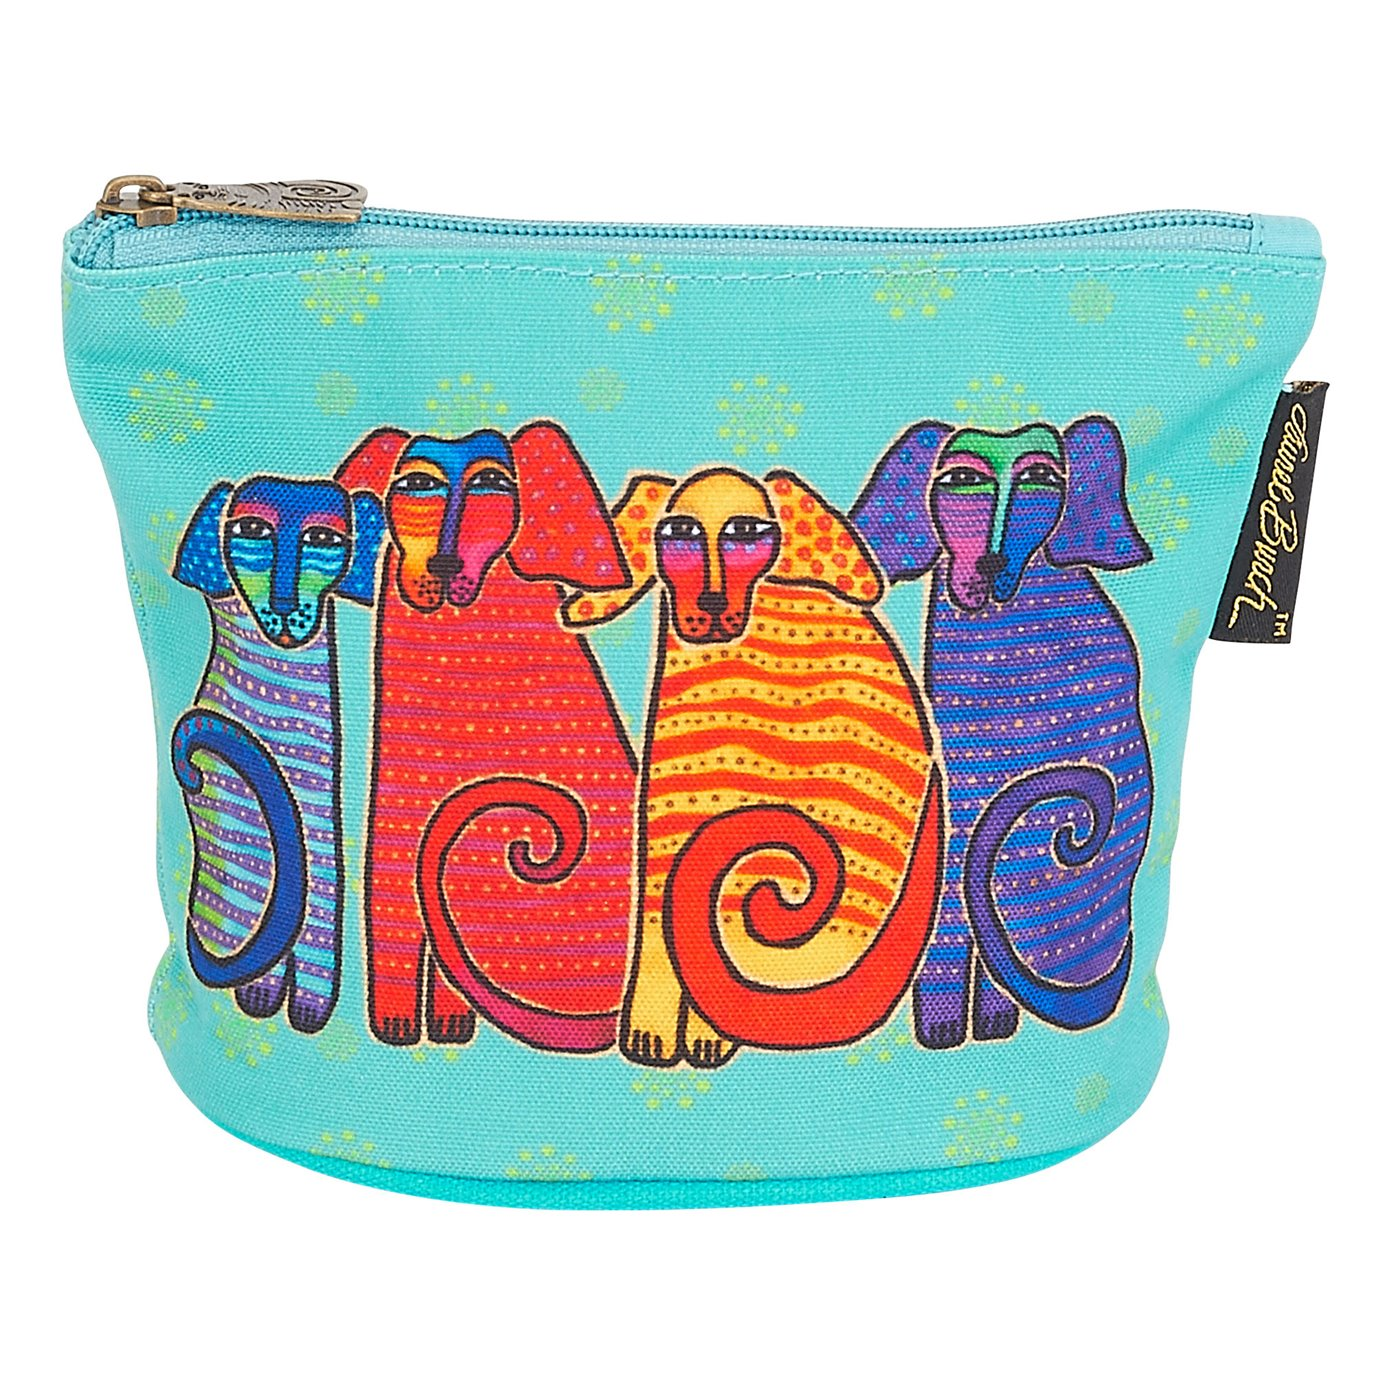 Laurel Burch Canine Friends Mini Cosmetic Bag - turquoise